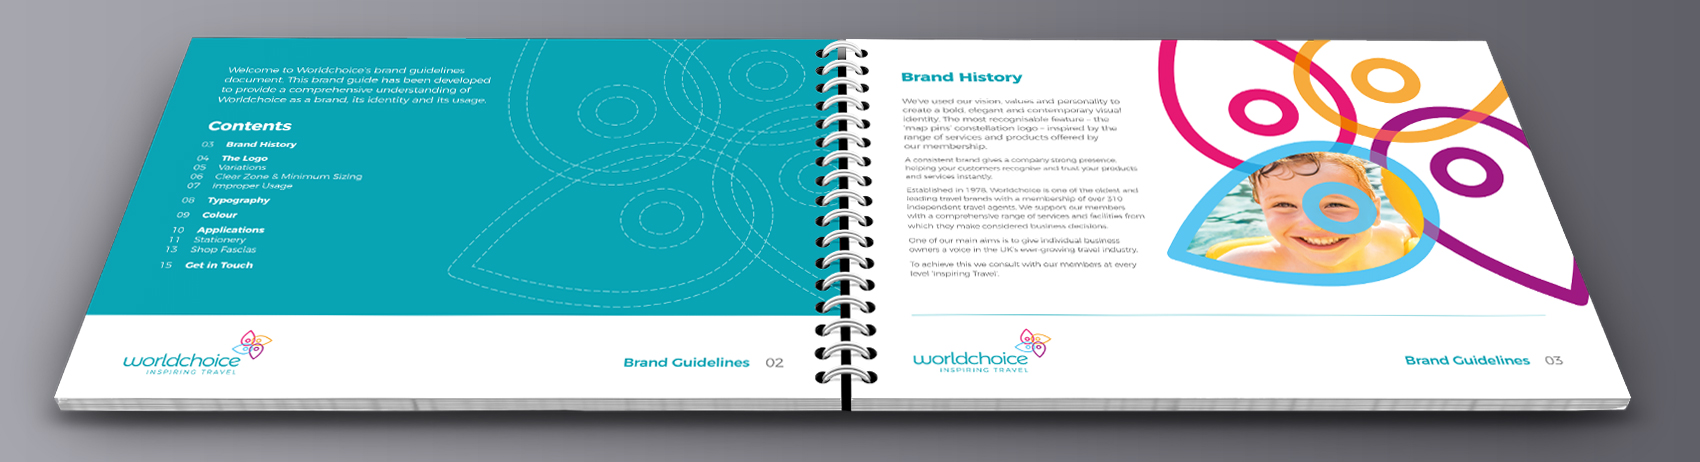 Worldchoice Brand Guidelines Reveal 1